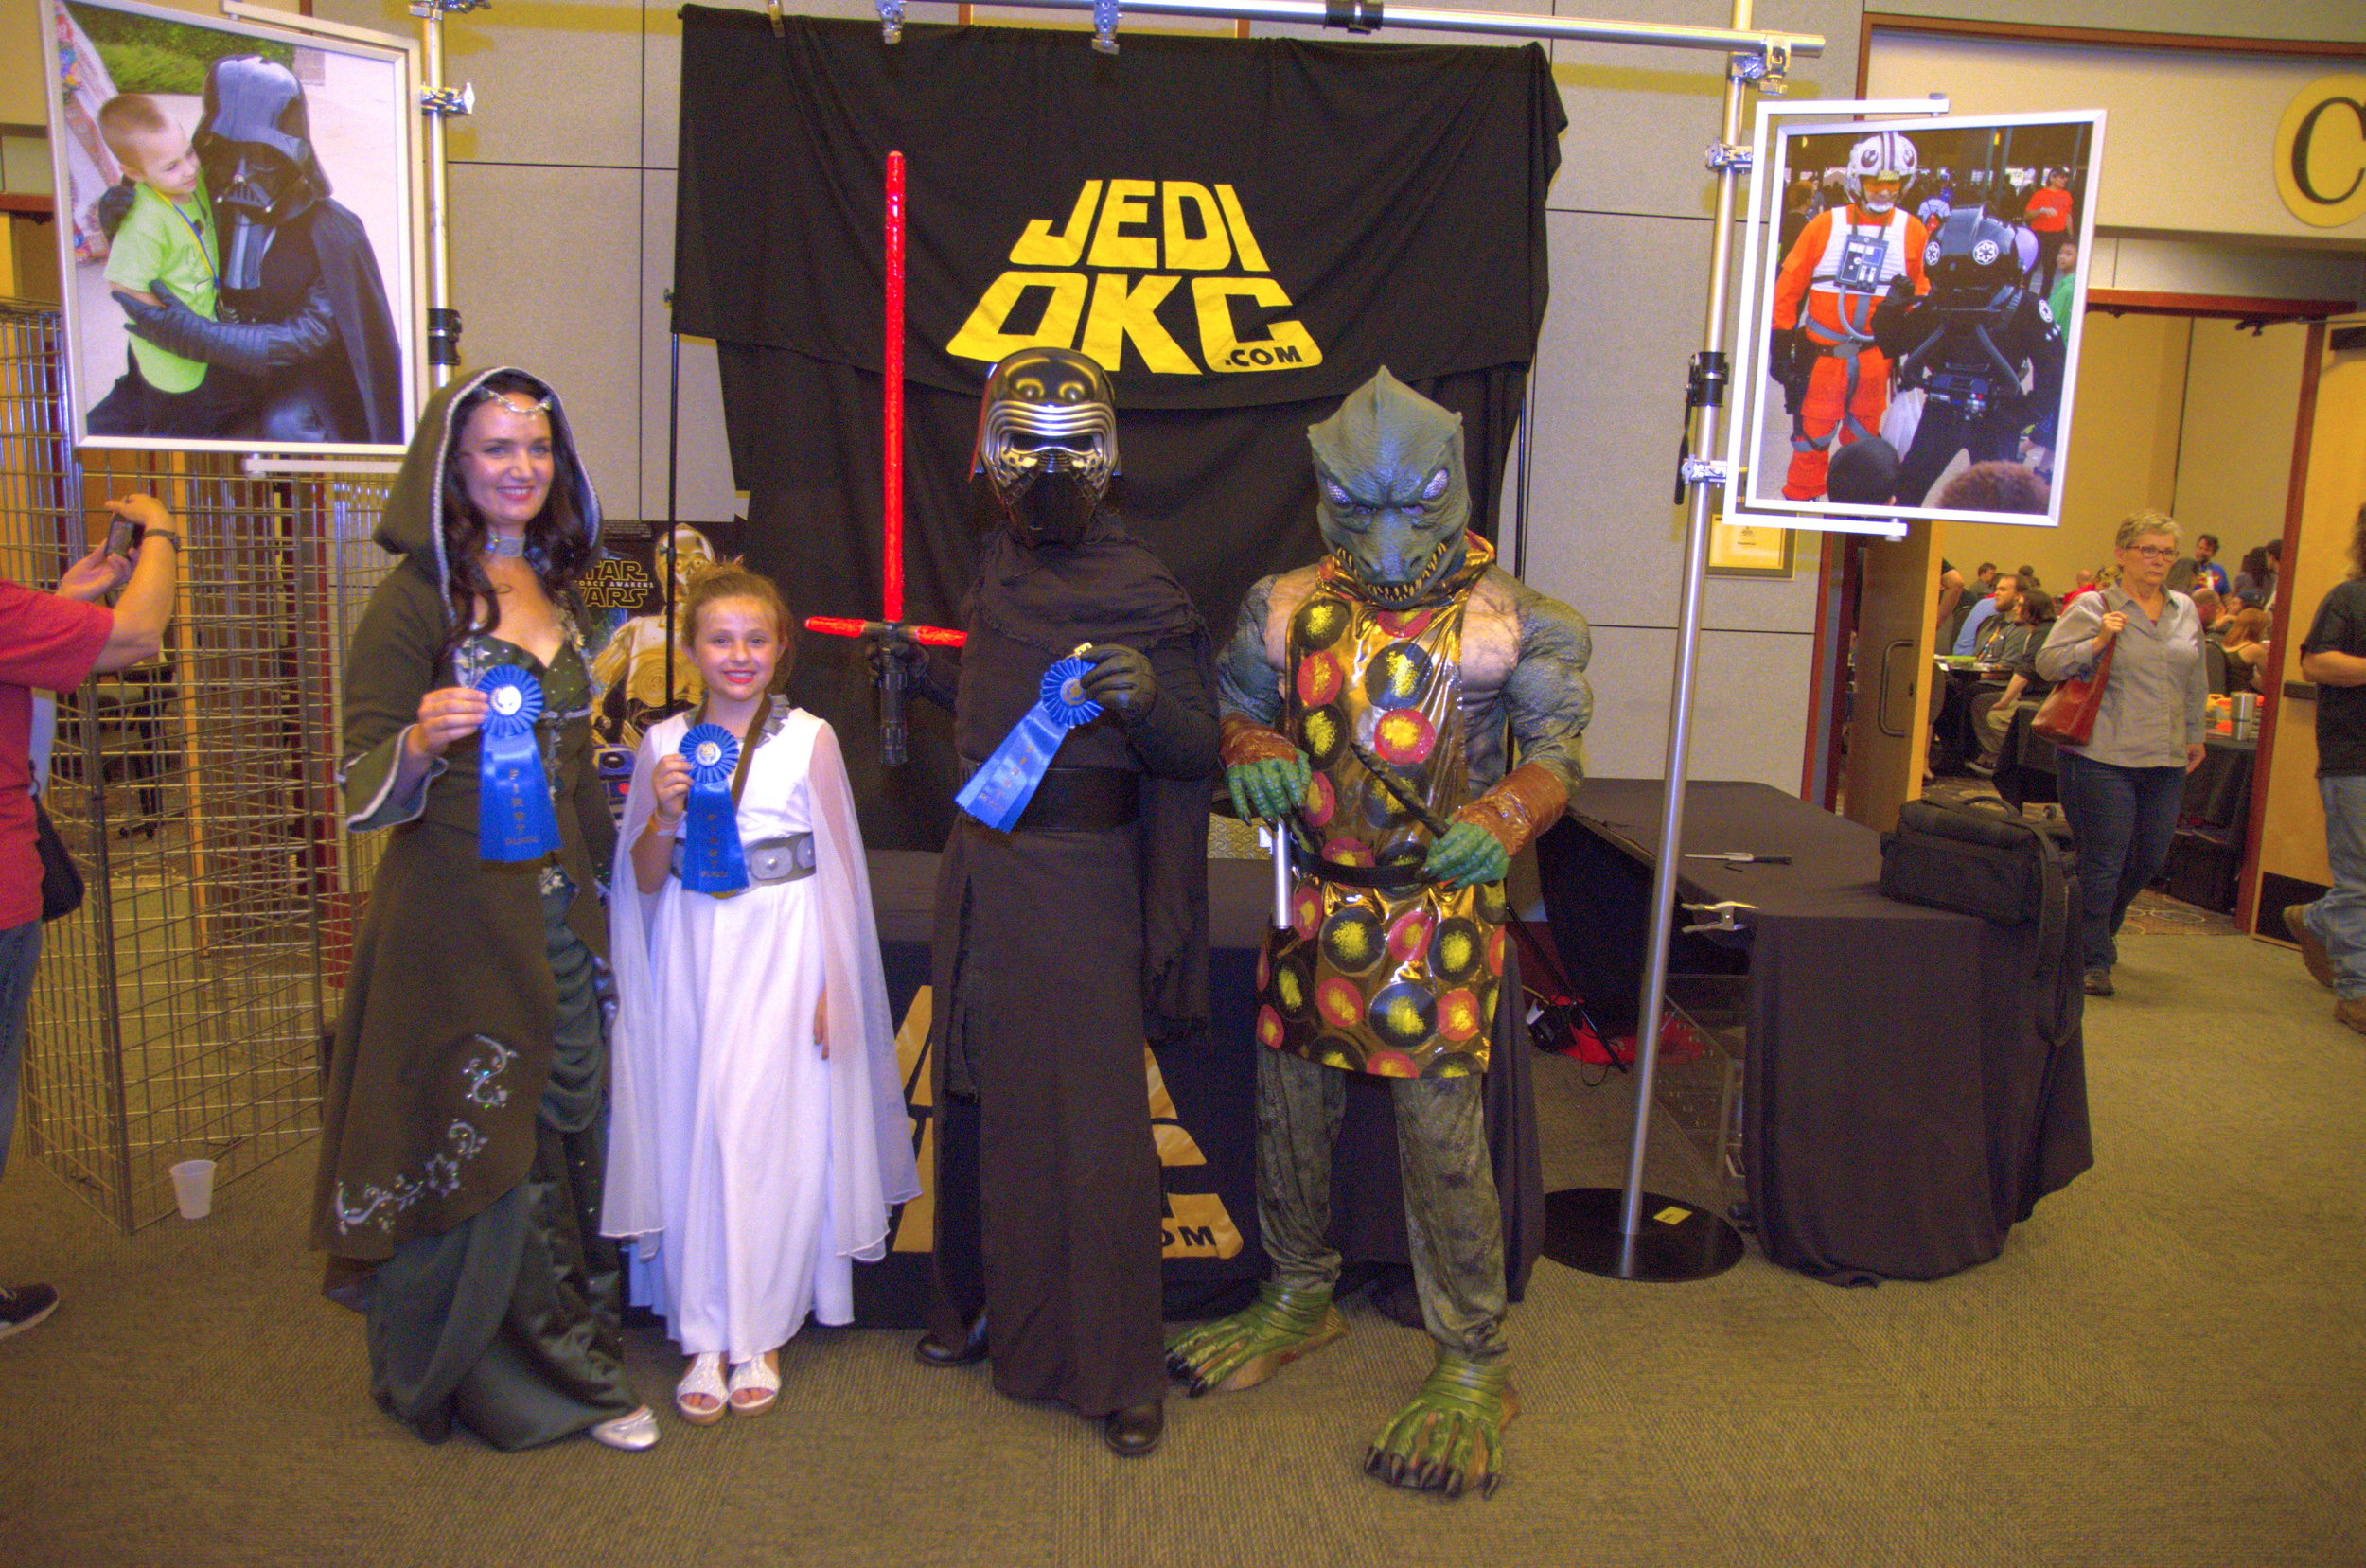 Pictures provided by Soonercon from last year's convention.